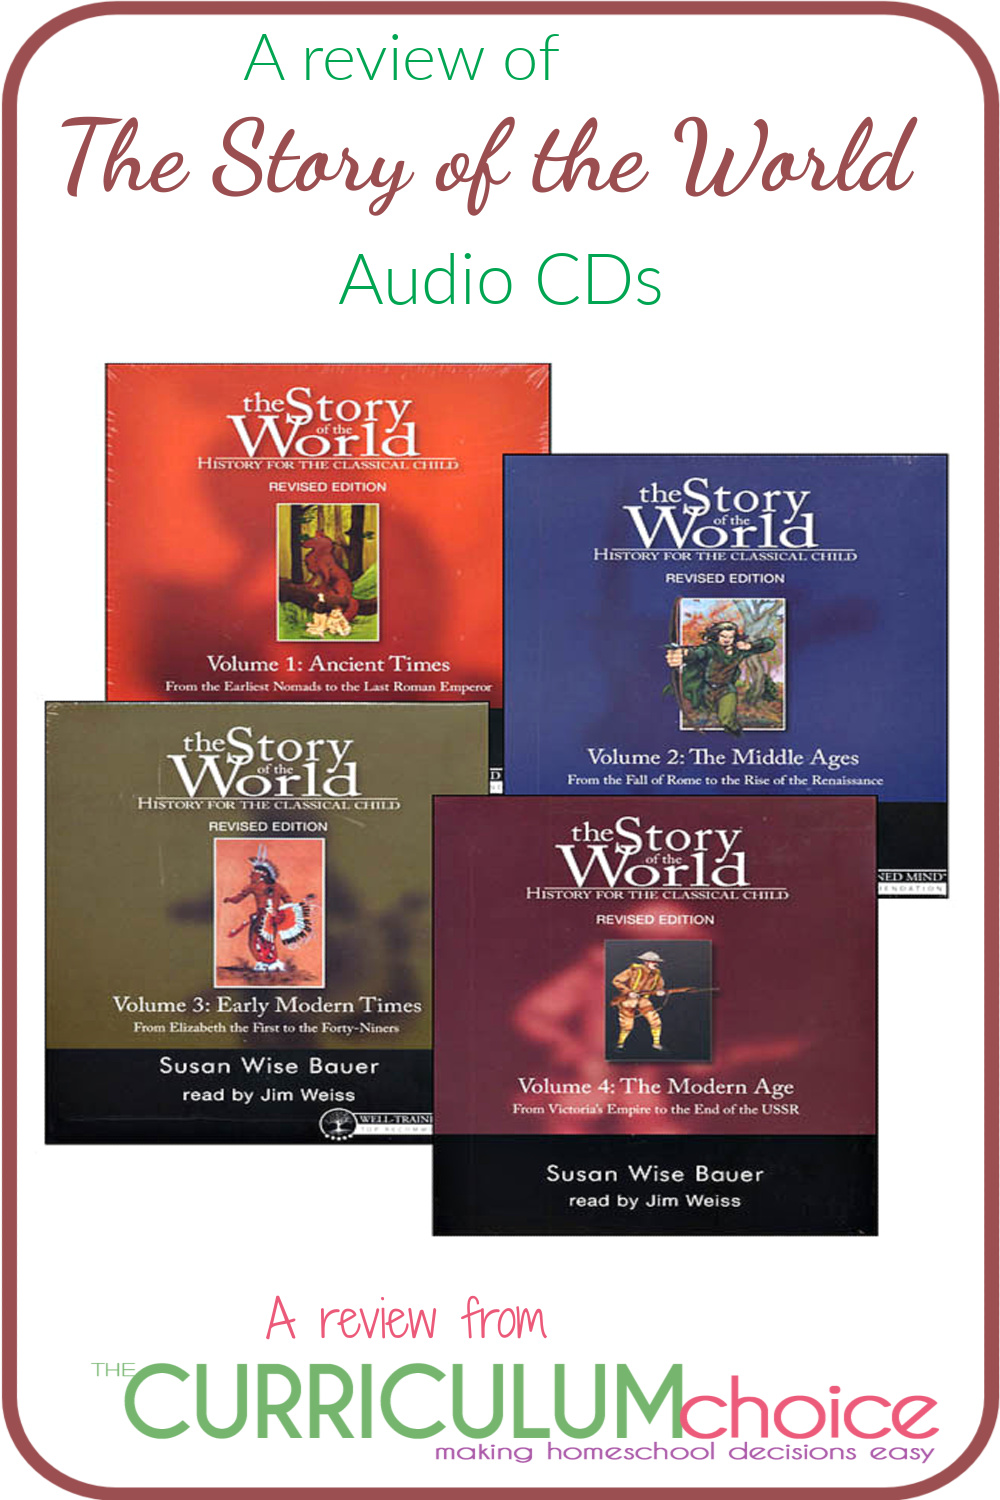 With The Story of the World Audio CDs the chapters come alive as they are read by Jim Weiss. The 4 volumes include 42 hours of narration! They allow you to learn on the go and can offer non-reading kids independence in their learning. A review from The Curriculum Choice